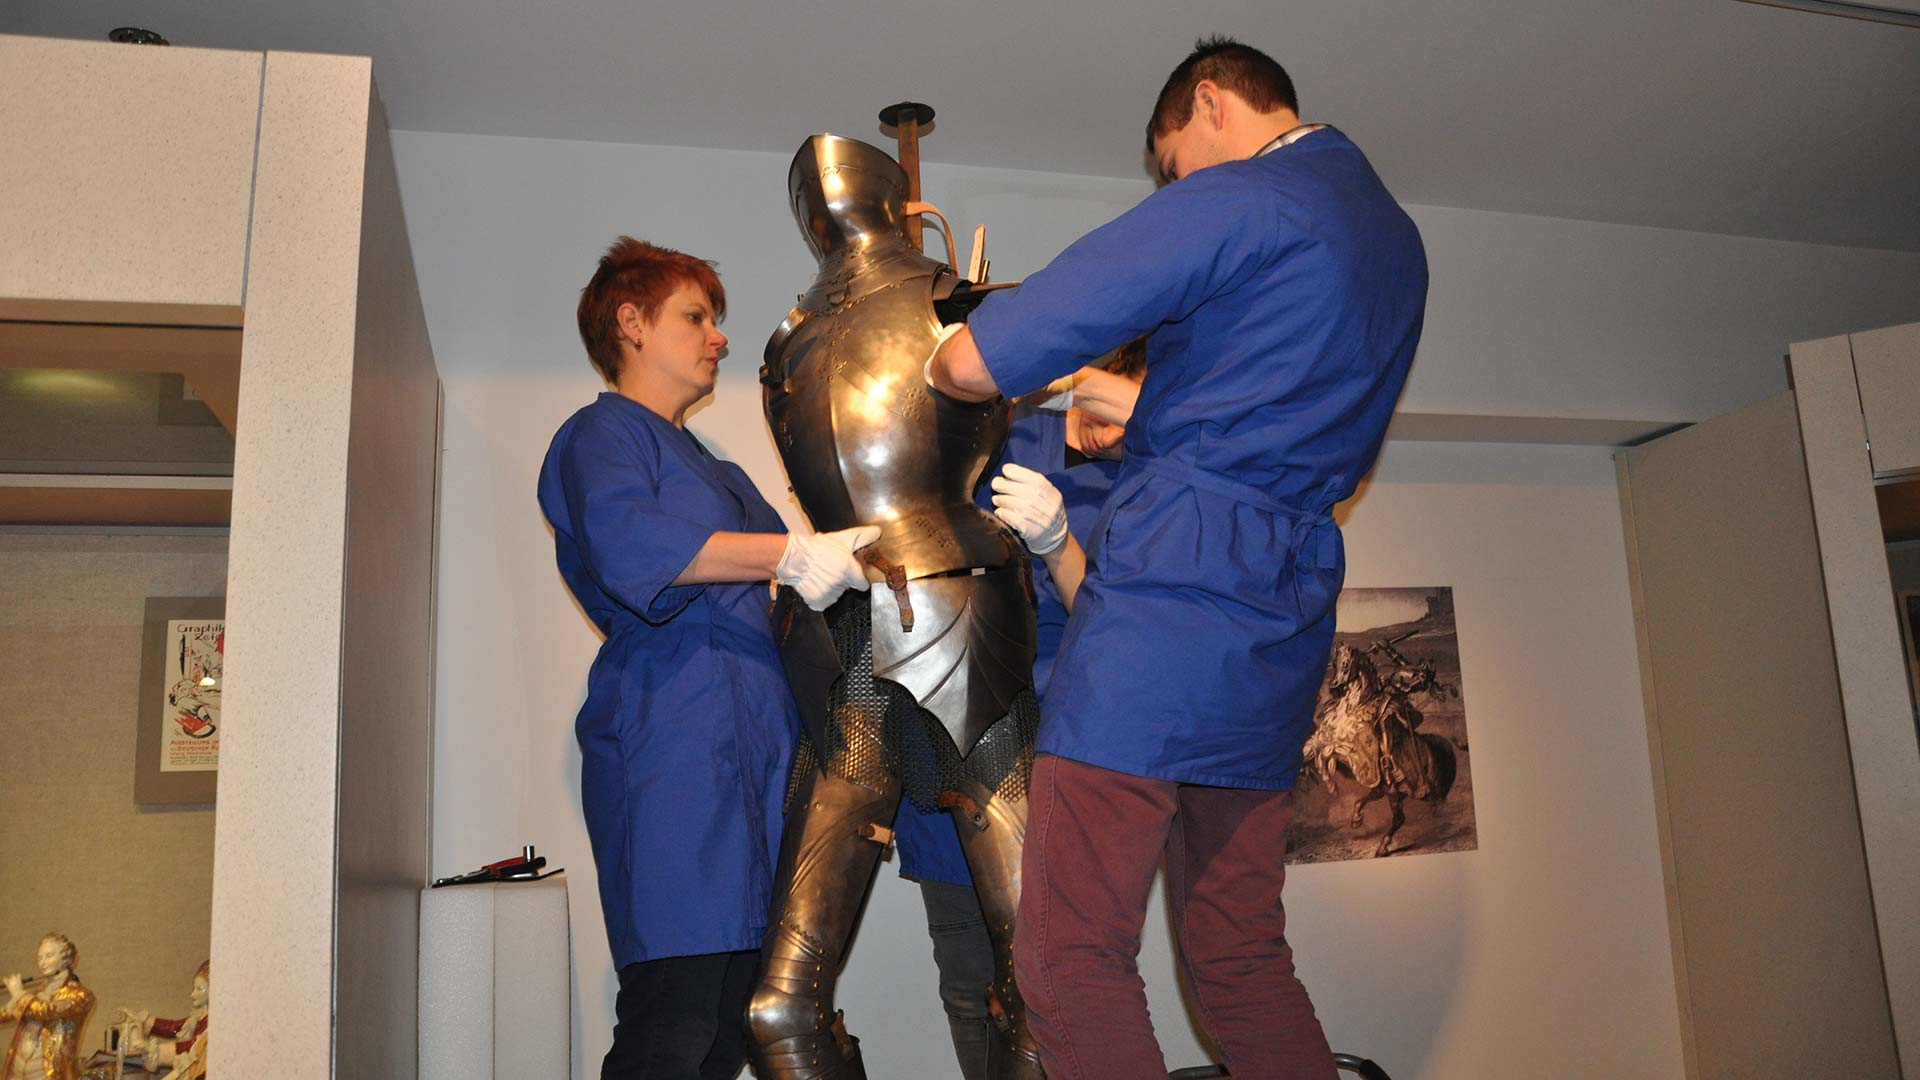 Reproduction of gothic armor returns to exhibit overview image